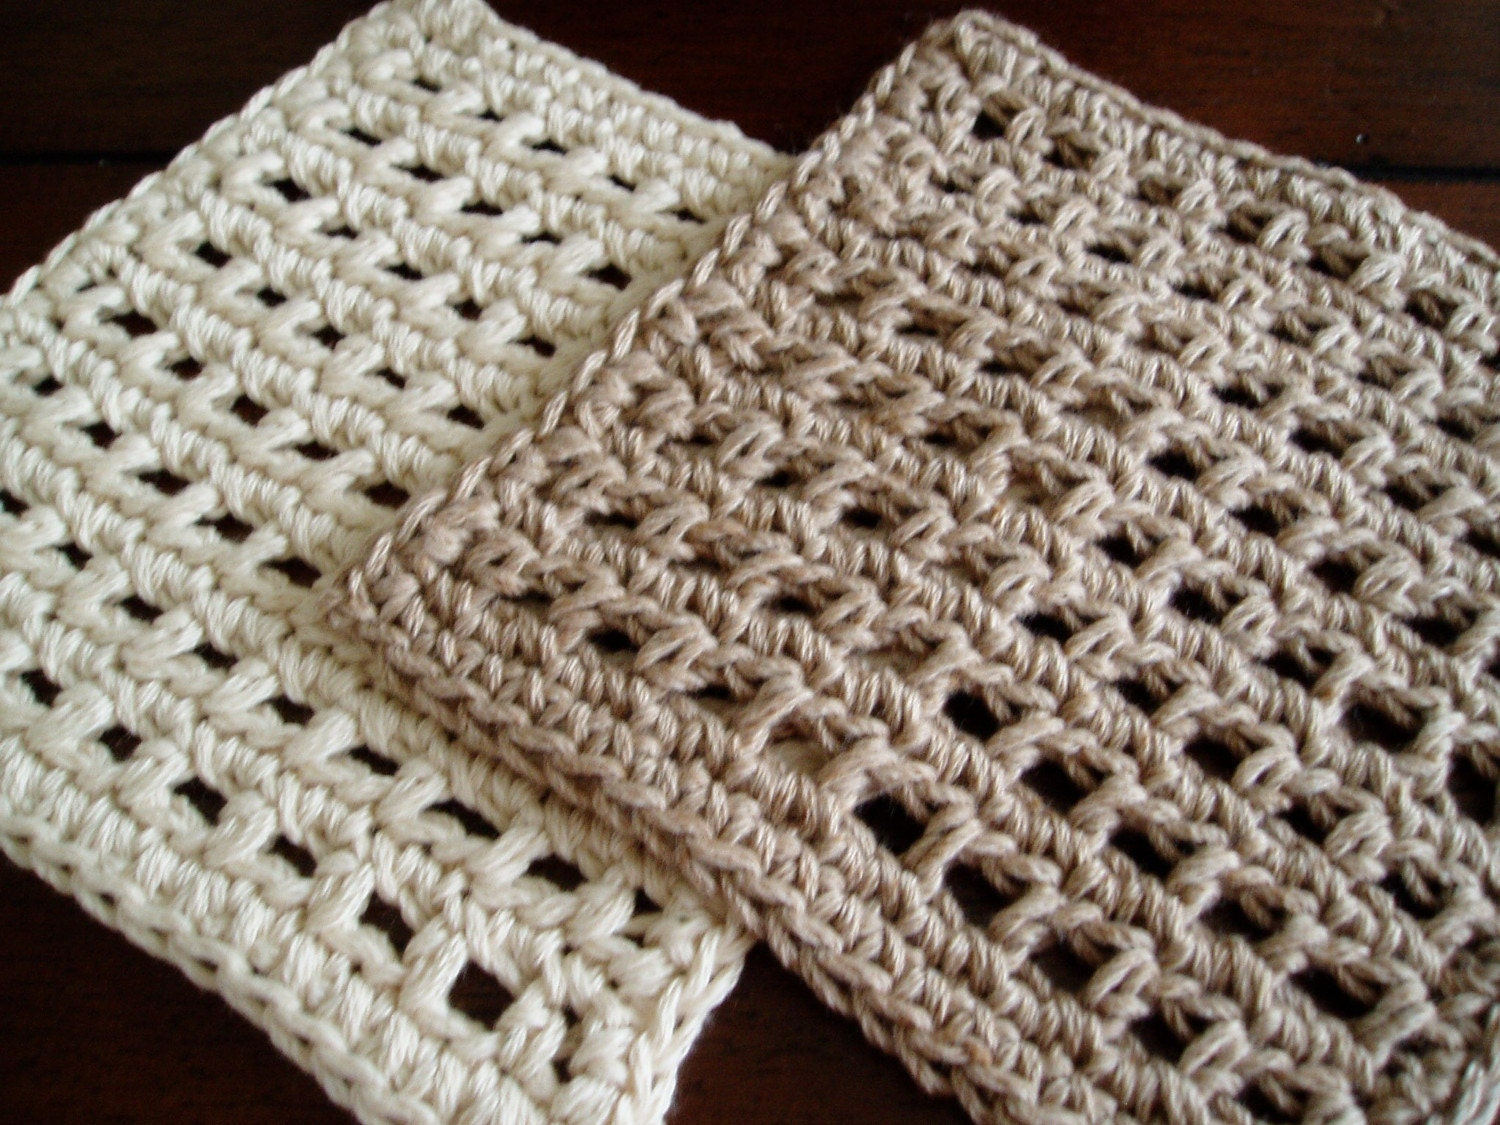 Easy Dishcloths to Crochet: Three Free Crochet Patterns for Simple